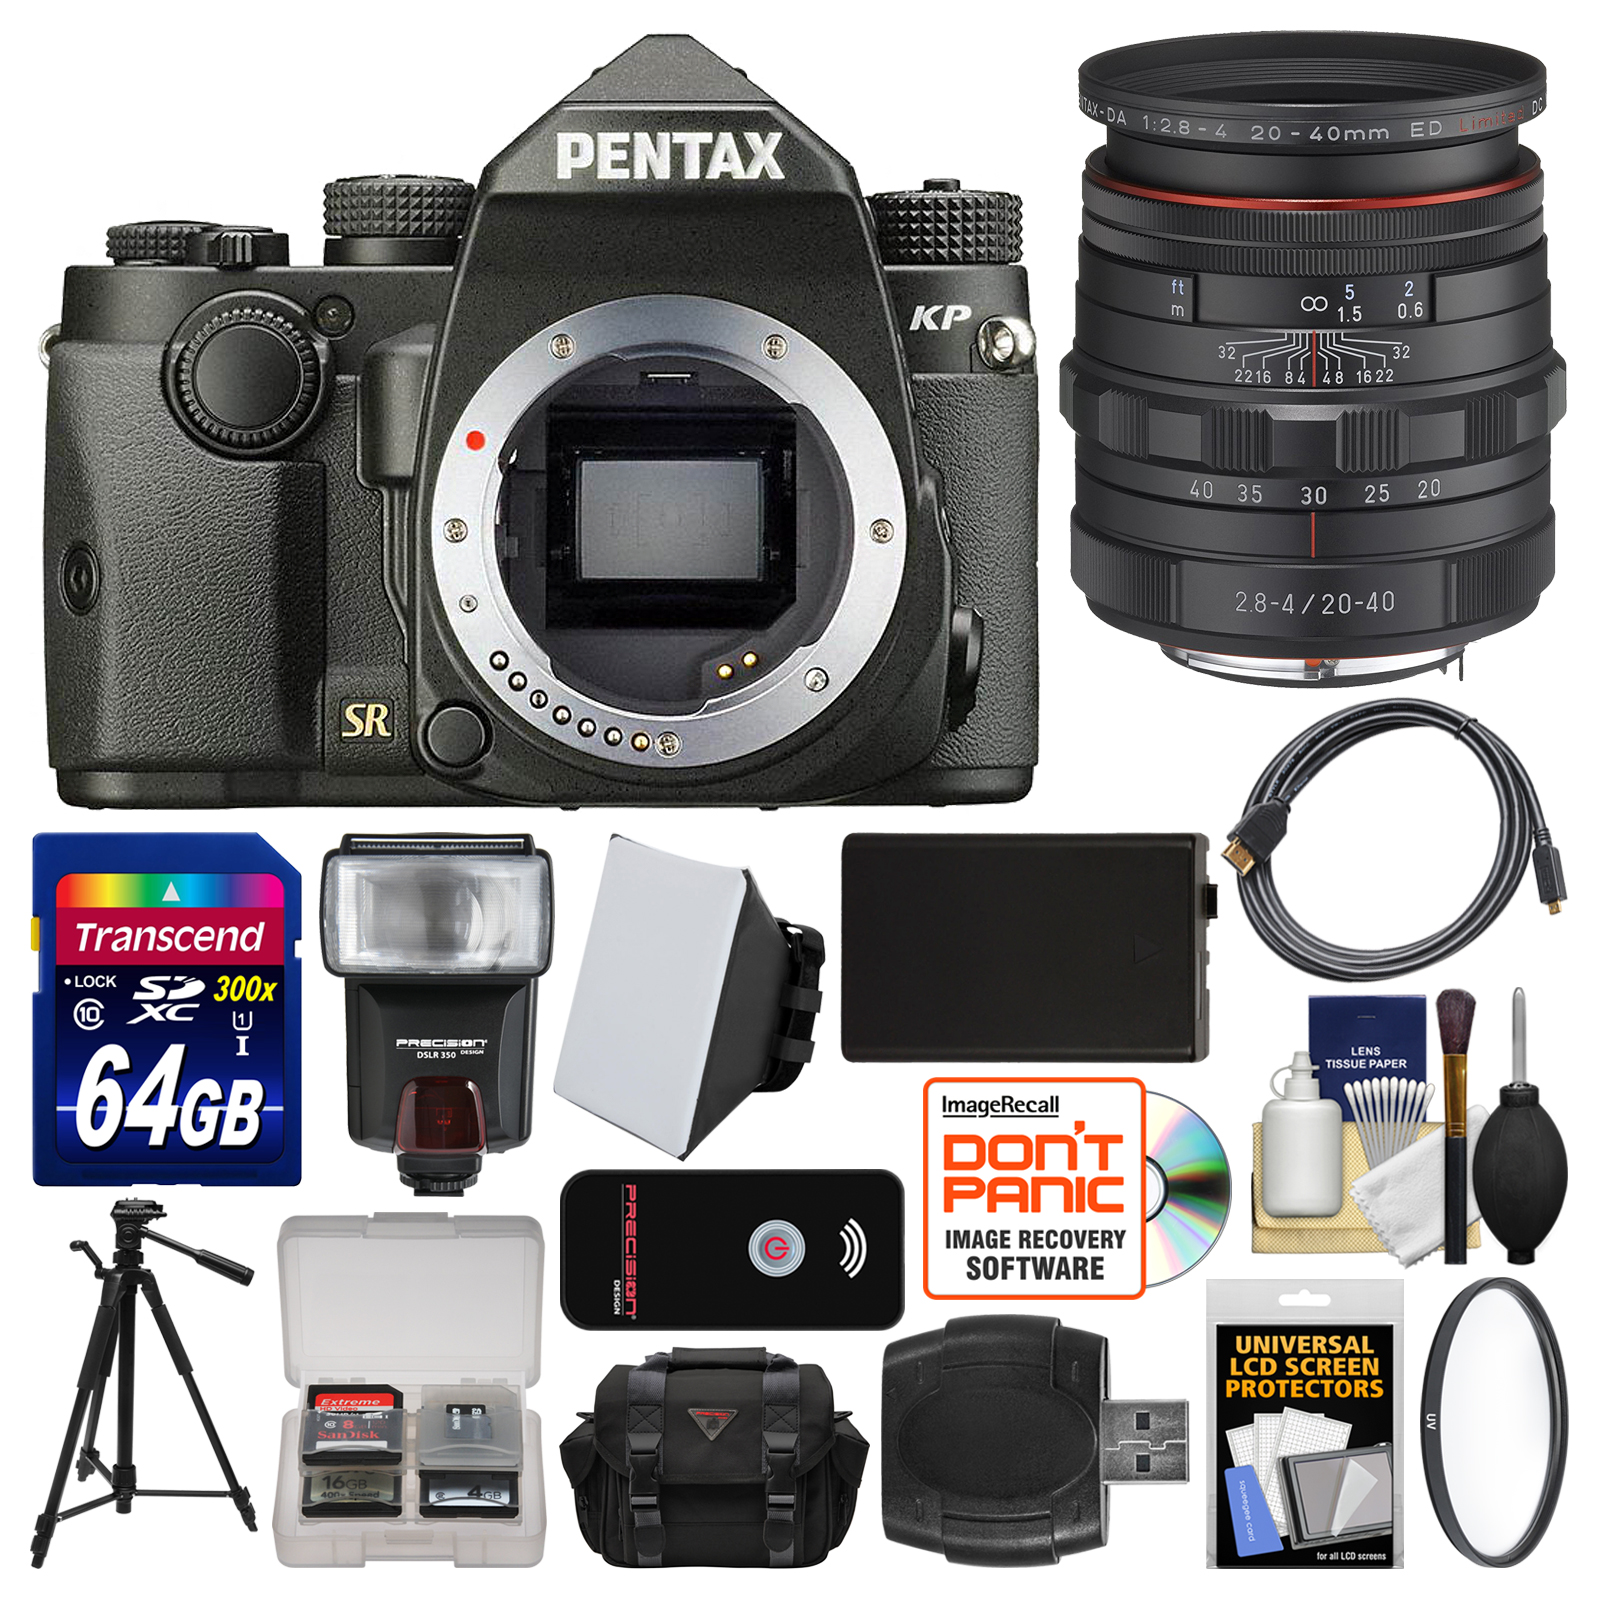 Pentax KP Wi-Fi Digital SLR Camera Body (Black) with 20-40mm Lens + 64GB Card + Case + Flash + Battery +... by Pentax